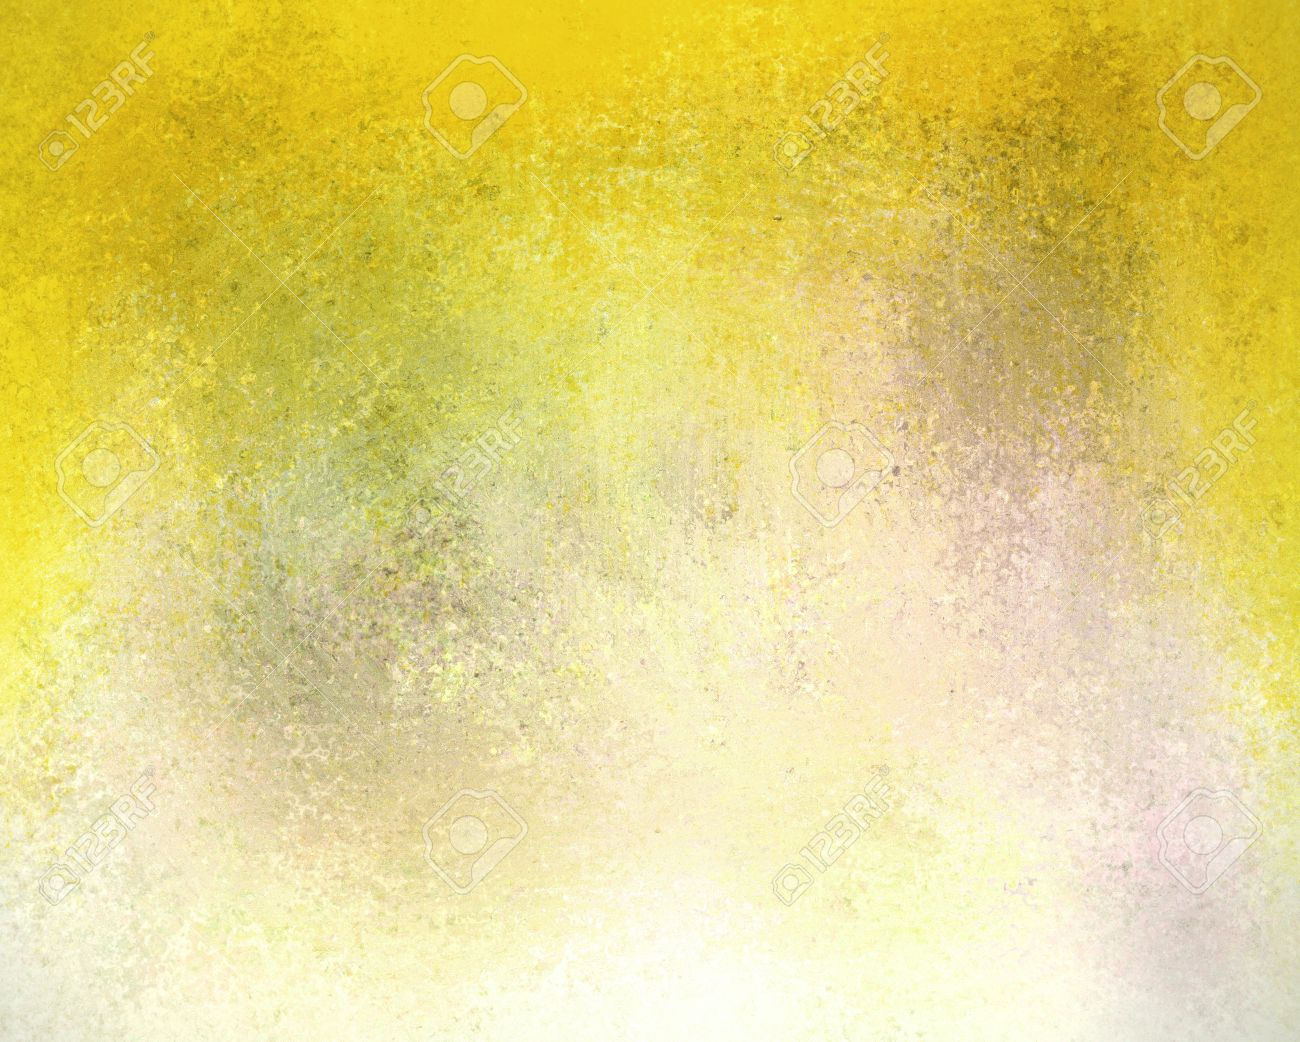 Website soft colors - Illustration White Yellow Background Abstract Gold Watercolor Illustration Bright Vibrant Background Soft Elegant Background Web Website Design Template